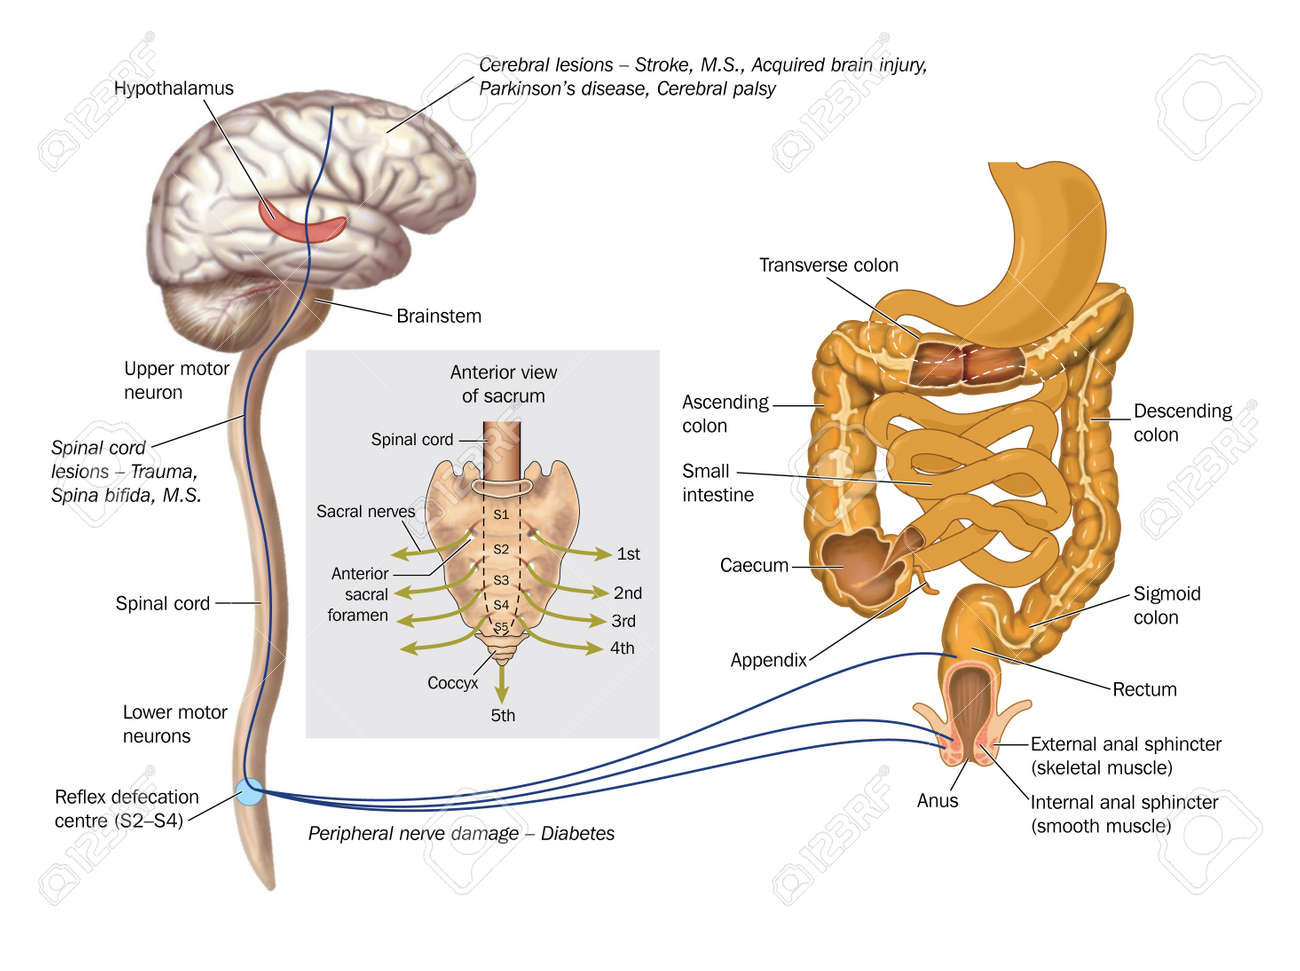 Drawing To Show The Nerve Pathways Controlling The Rectum And